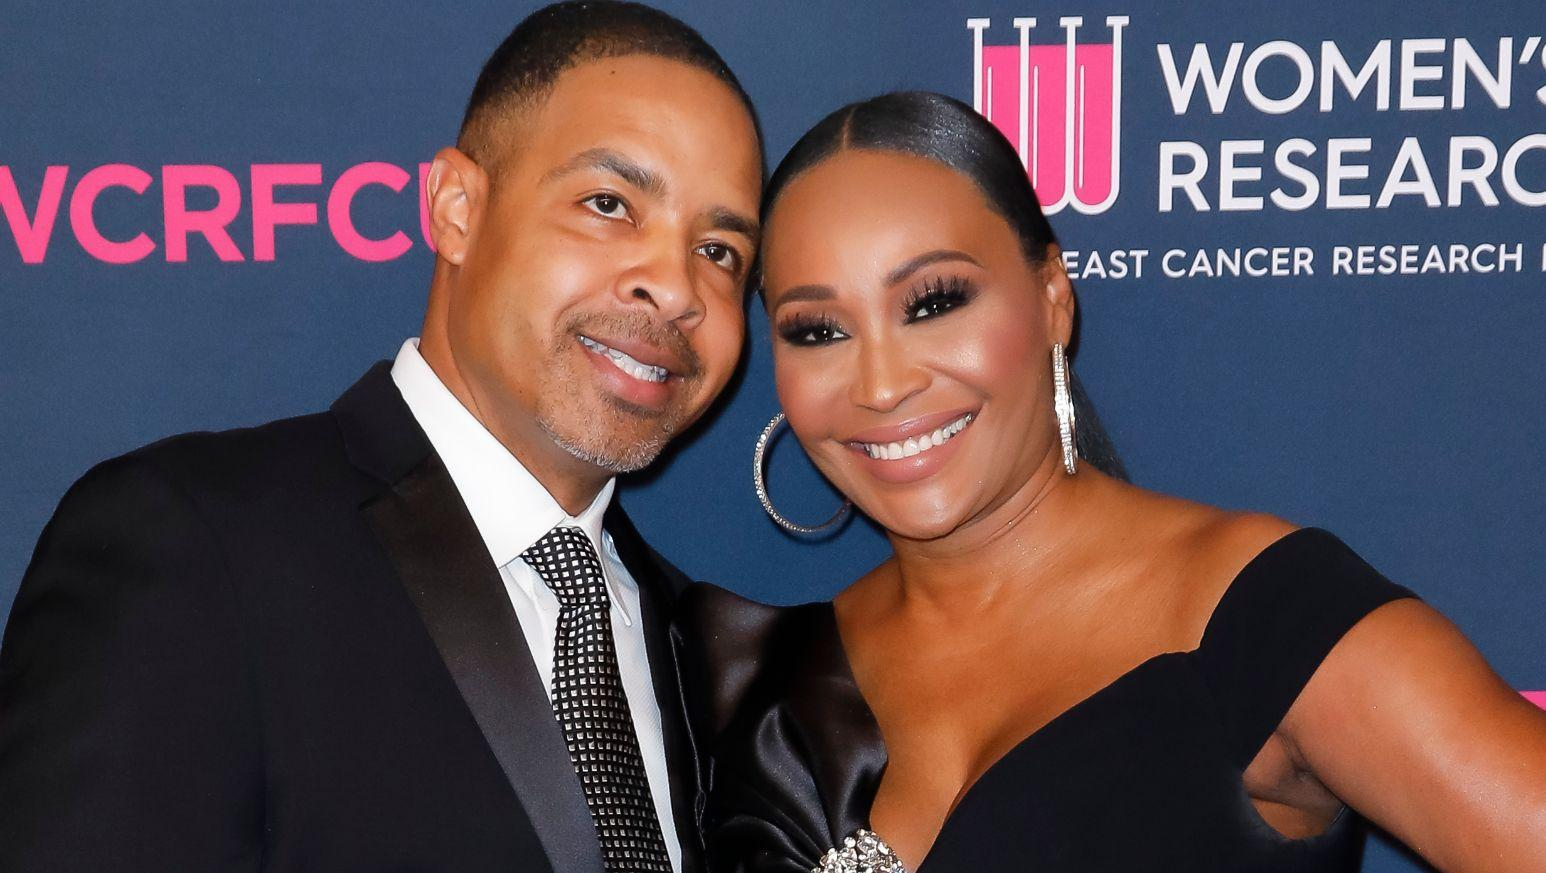 Cynthia Bailey Is Celebrating Pride Month - Check Out The Photo That She Shared